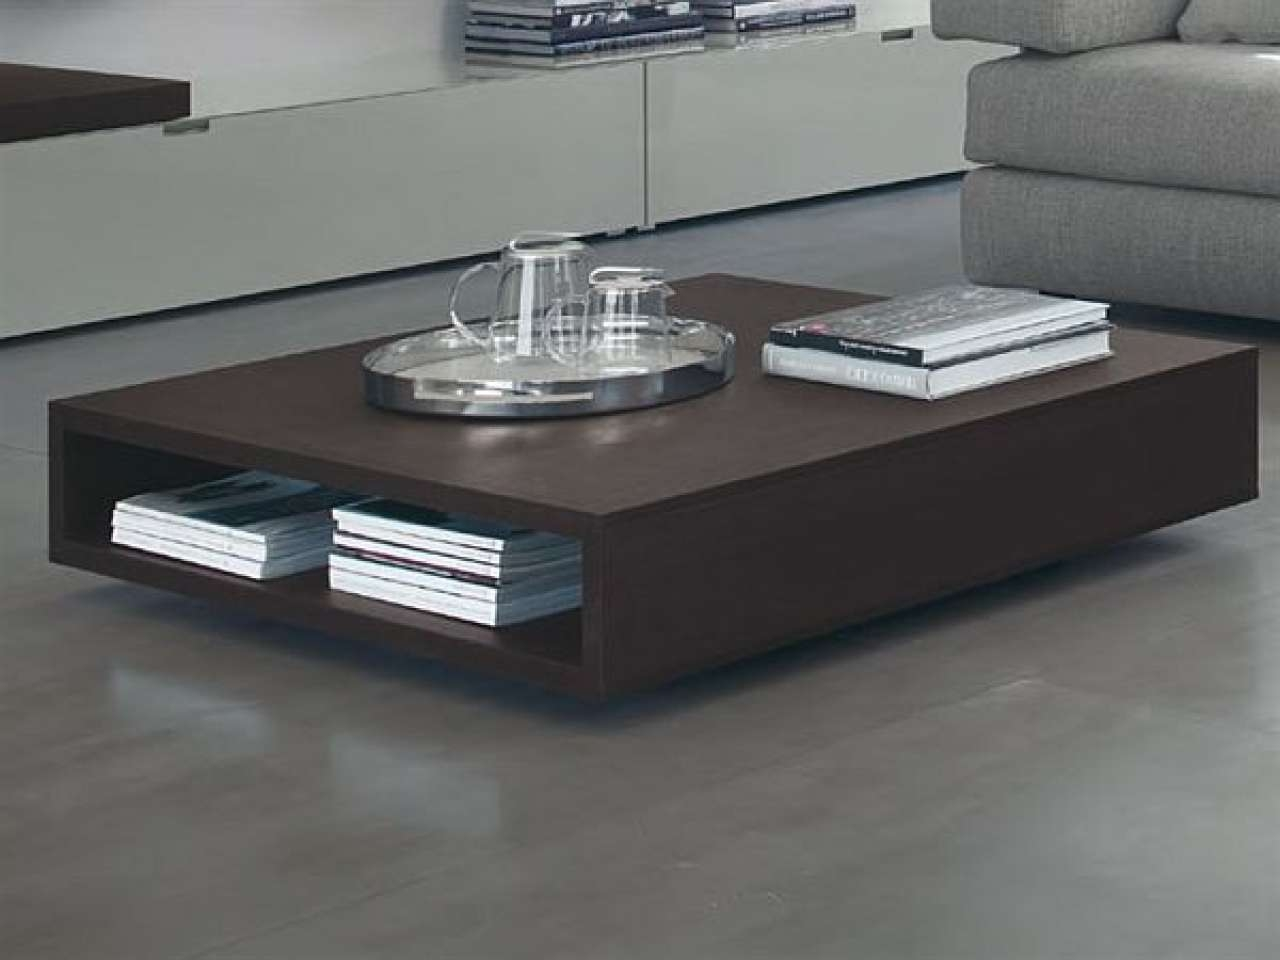 Low Contemporary Coffee Tables With Storage : Ethnic Low Pertaining To Famous Low Wooden Coffee Tables (View 14 of 20)